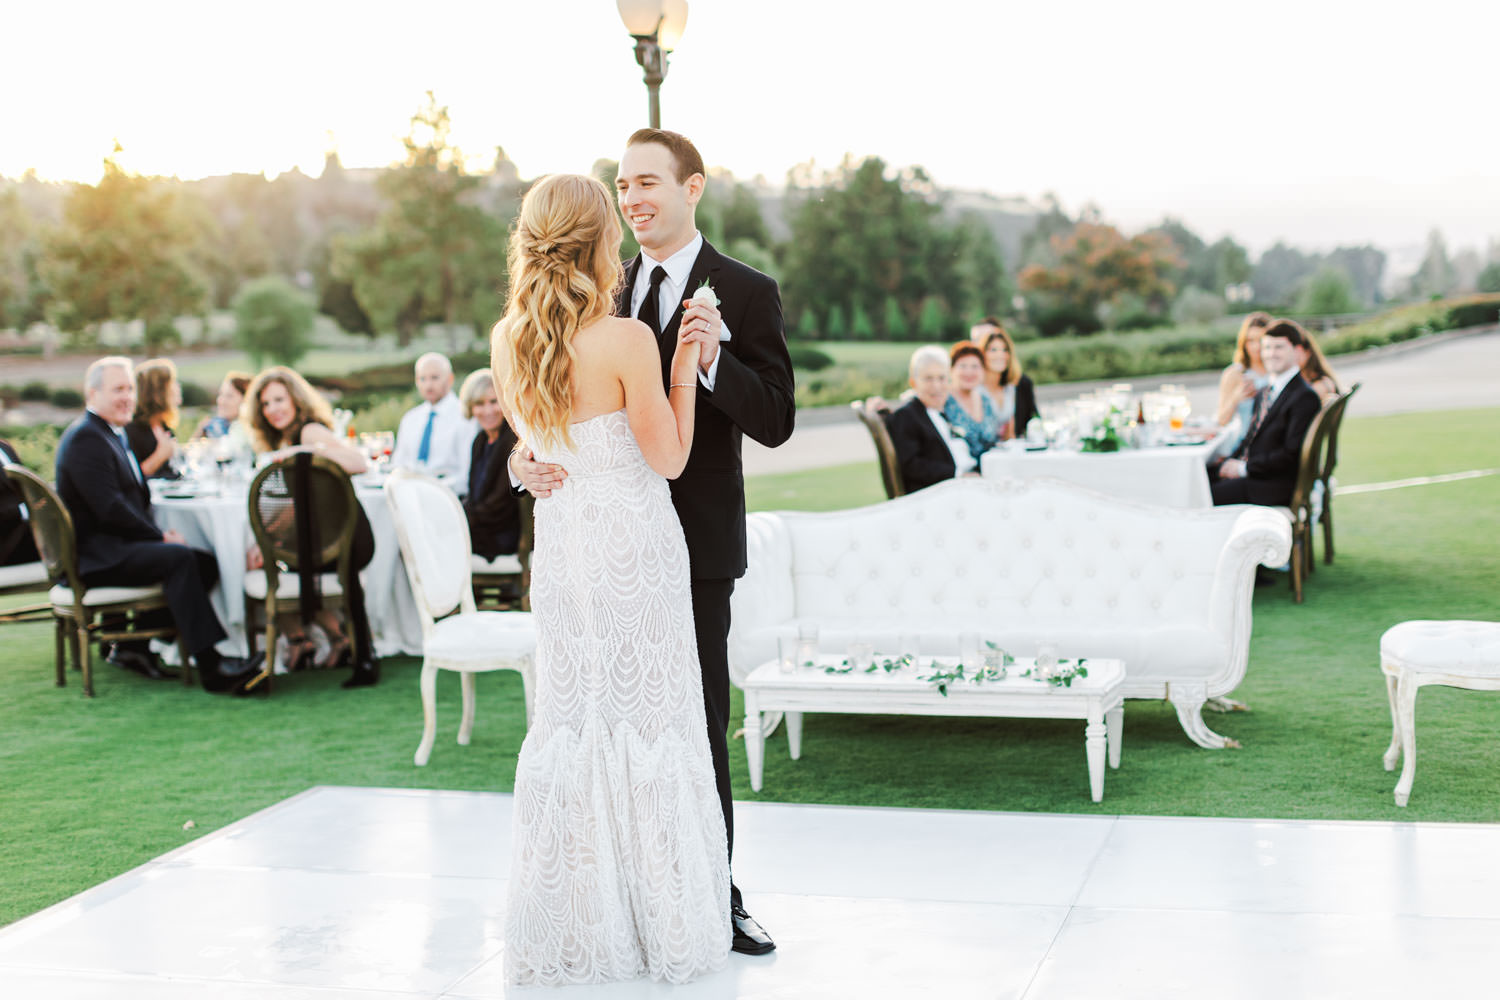 Photo of an al fresco reception first dance with bride and groom on a white dance floor. Del Mar Country Club Wedding by Cavin Elizabeth Photography